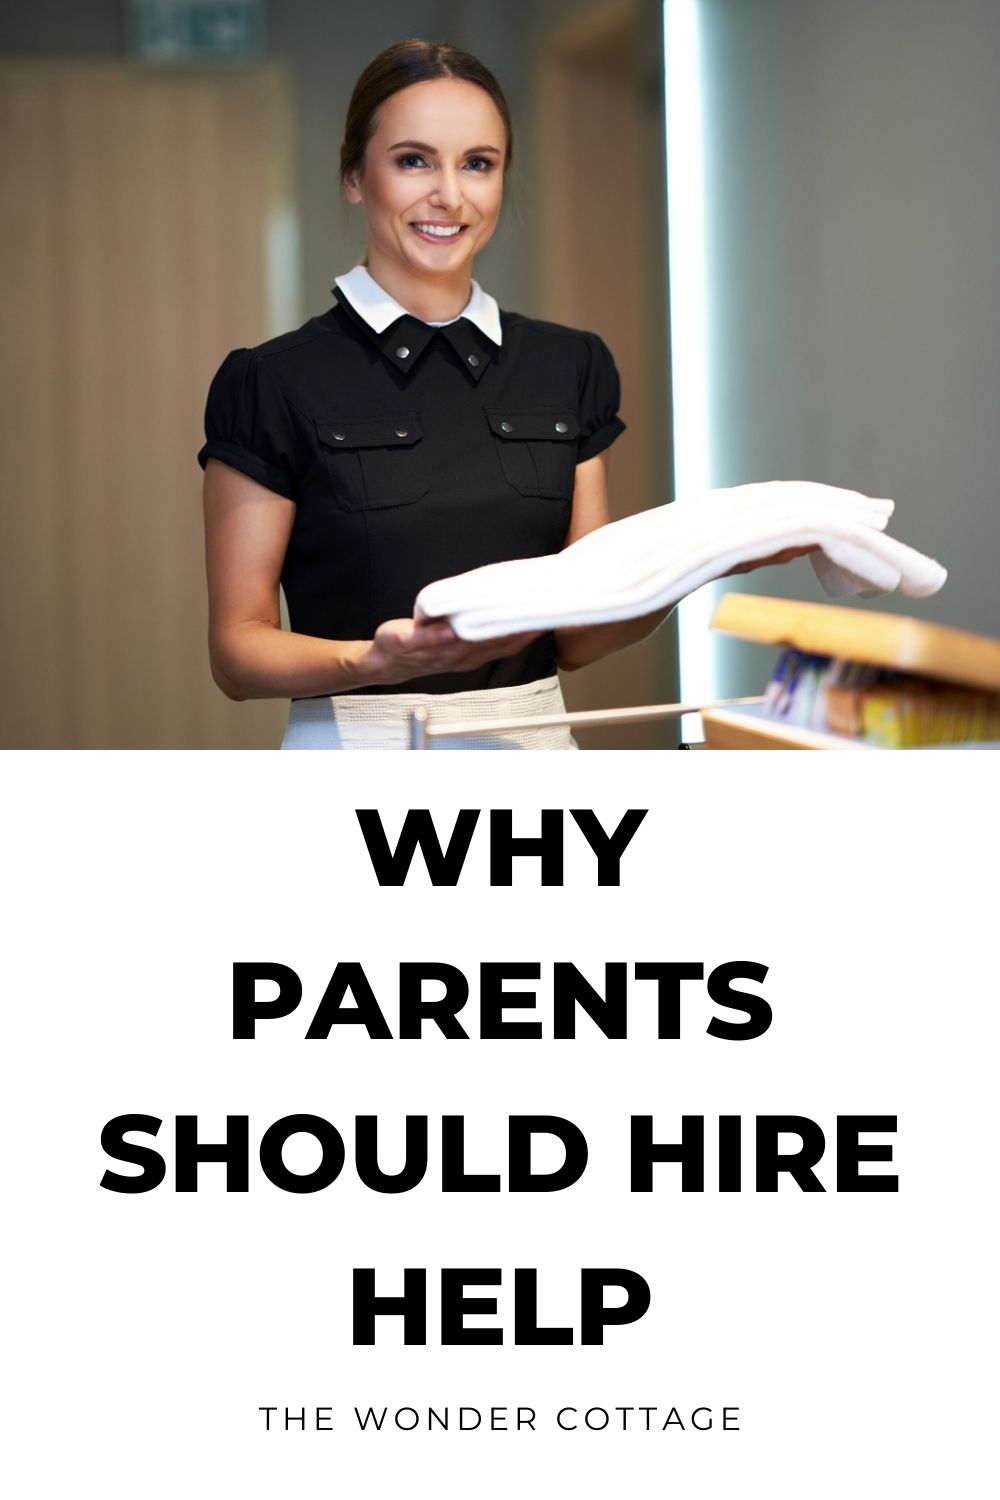 why parents should hire help